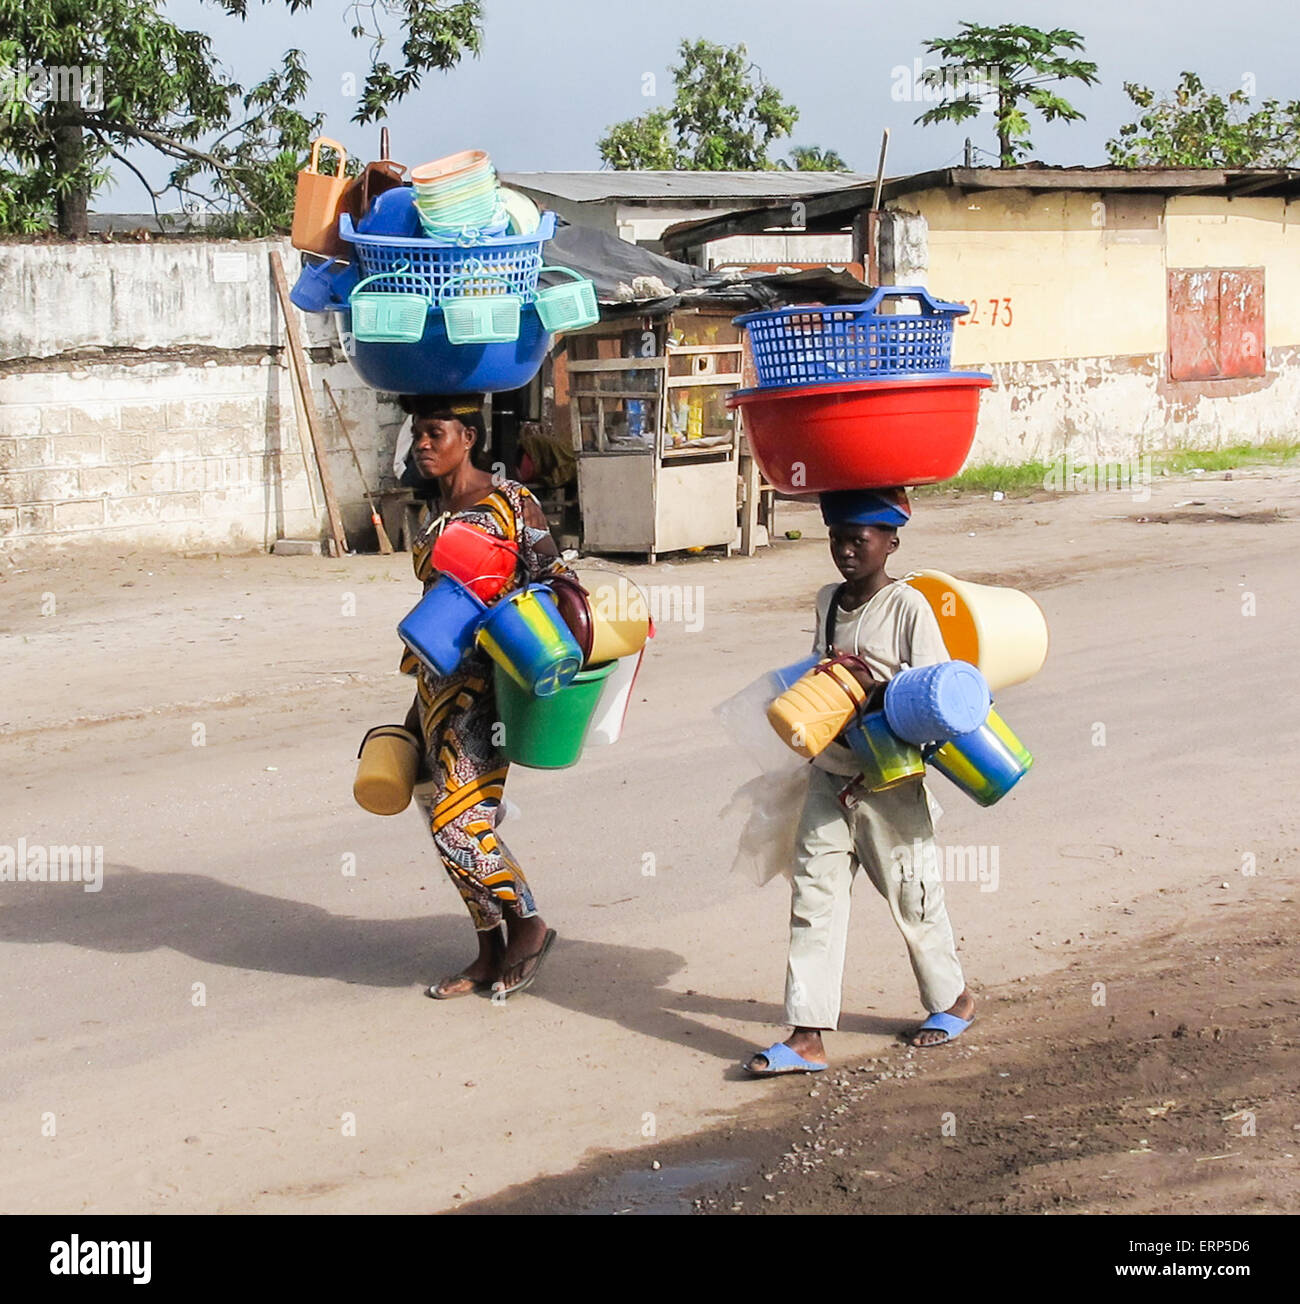 An African woman and child in Brazzaville the capital of the Republic of Congo carrying plastic water buckets on - Stock Image